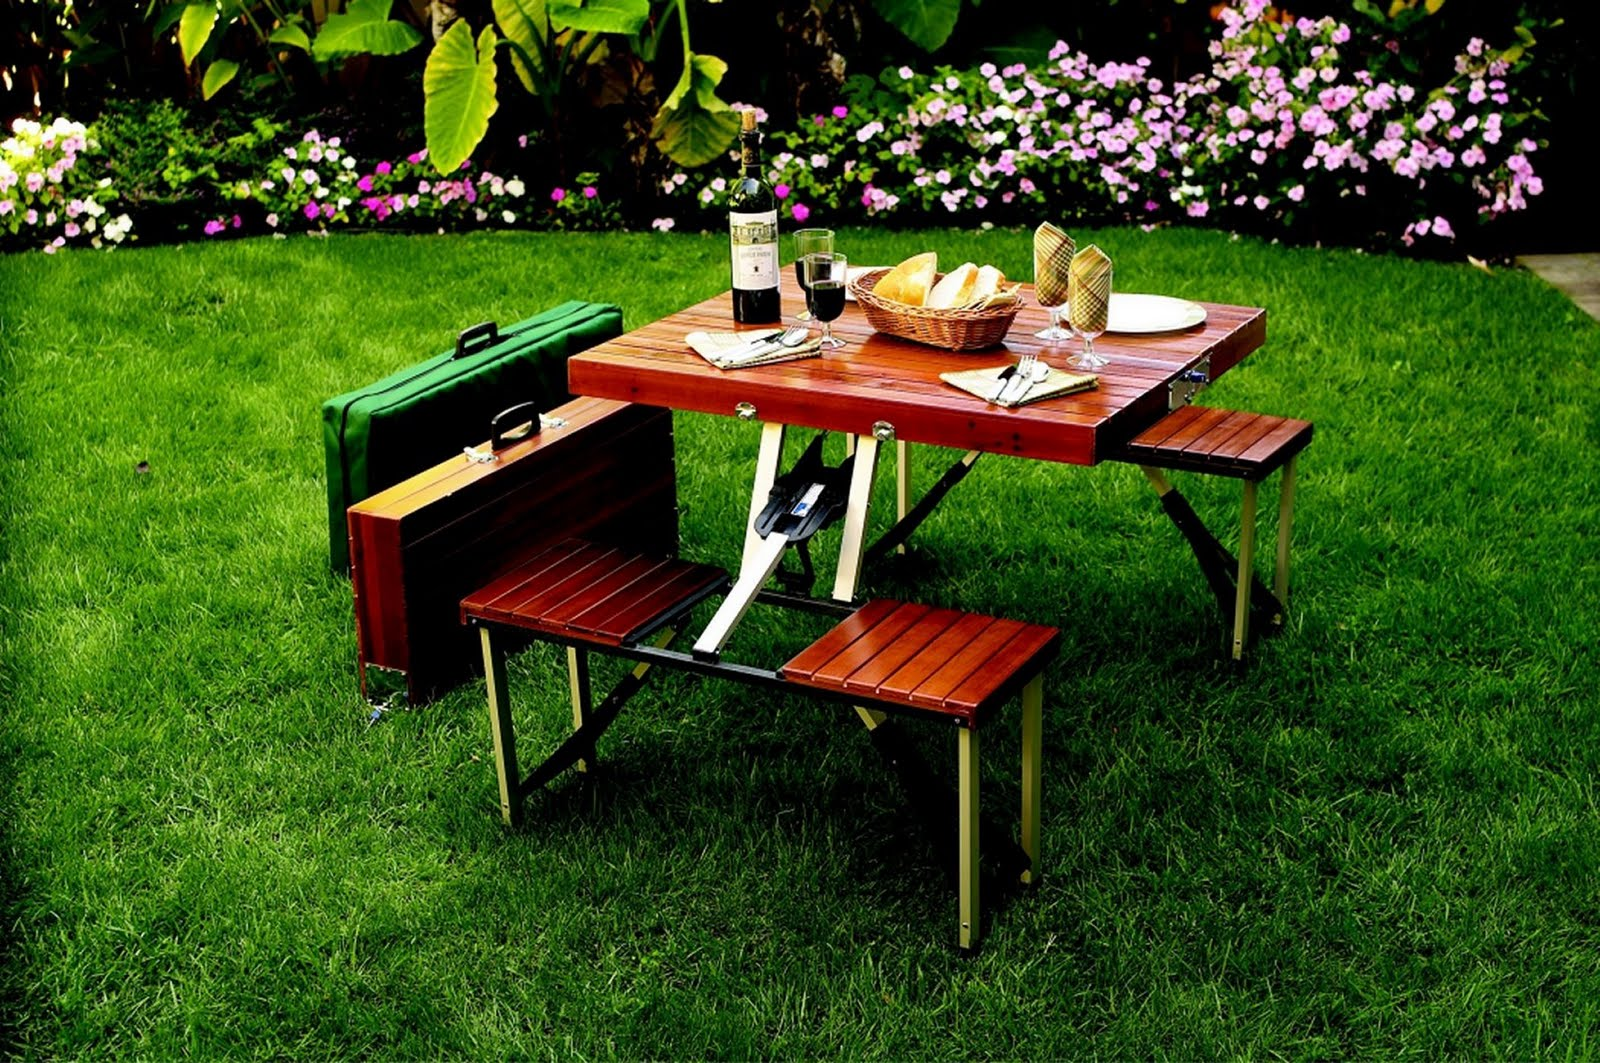 Picnic Table Set : Party Picnic: Picnic Wooden Folding Table Set